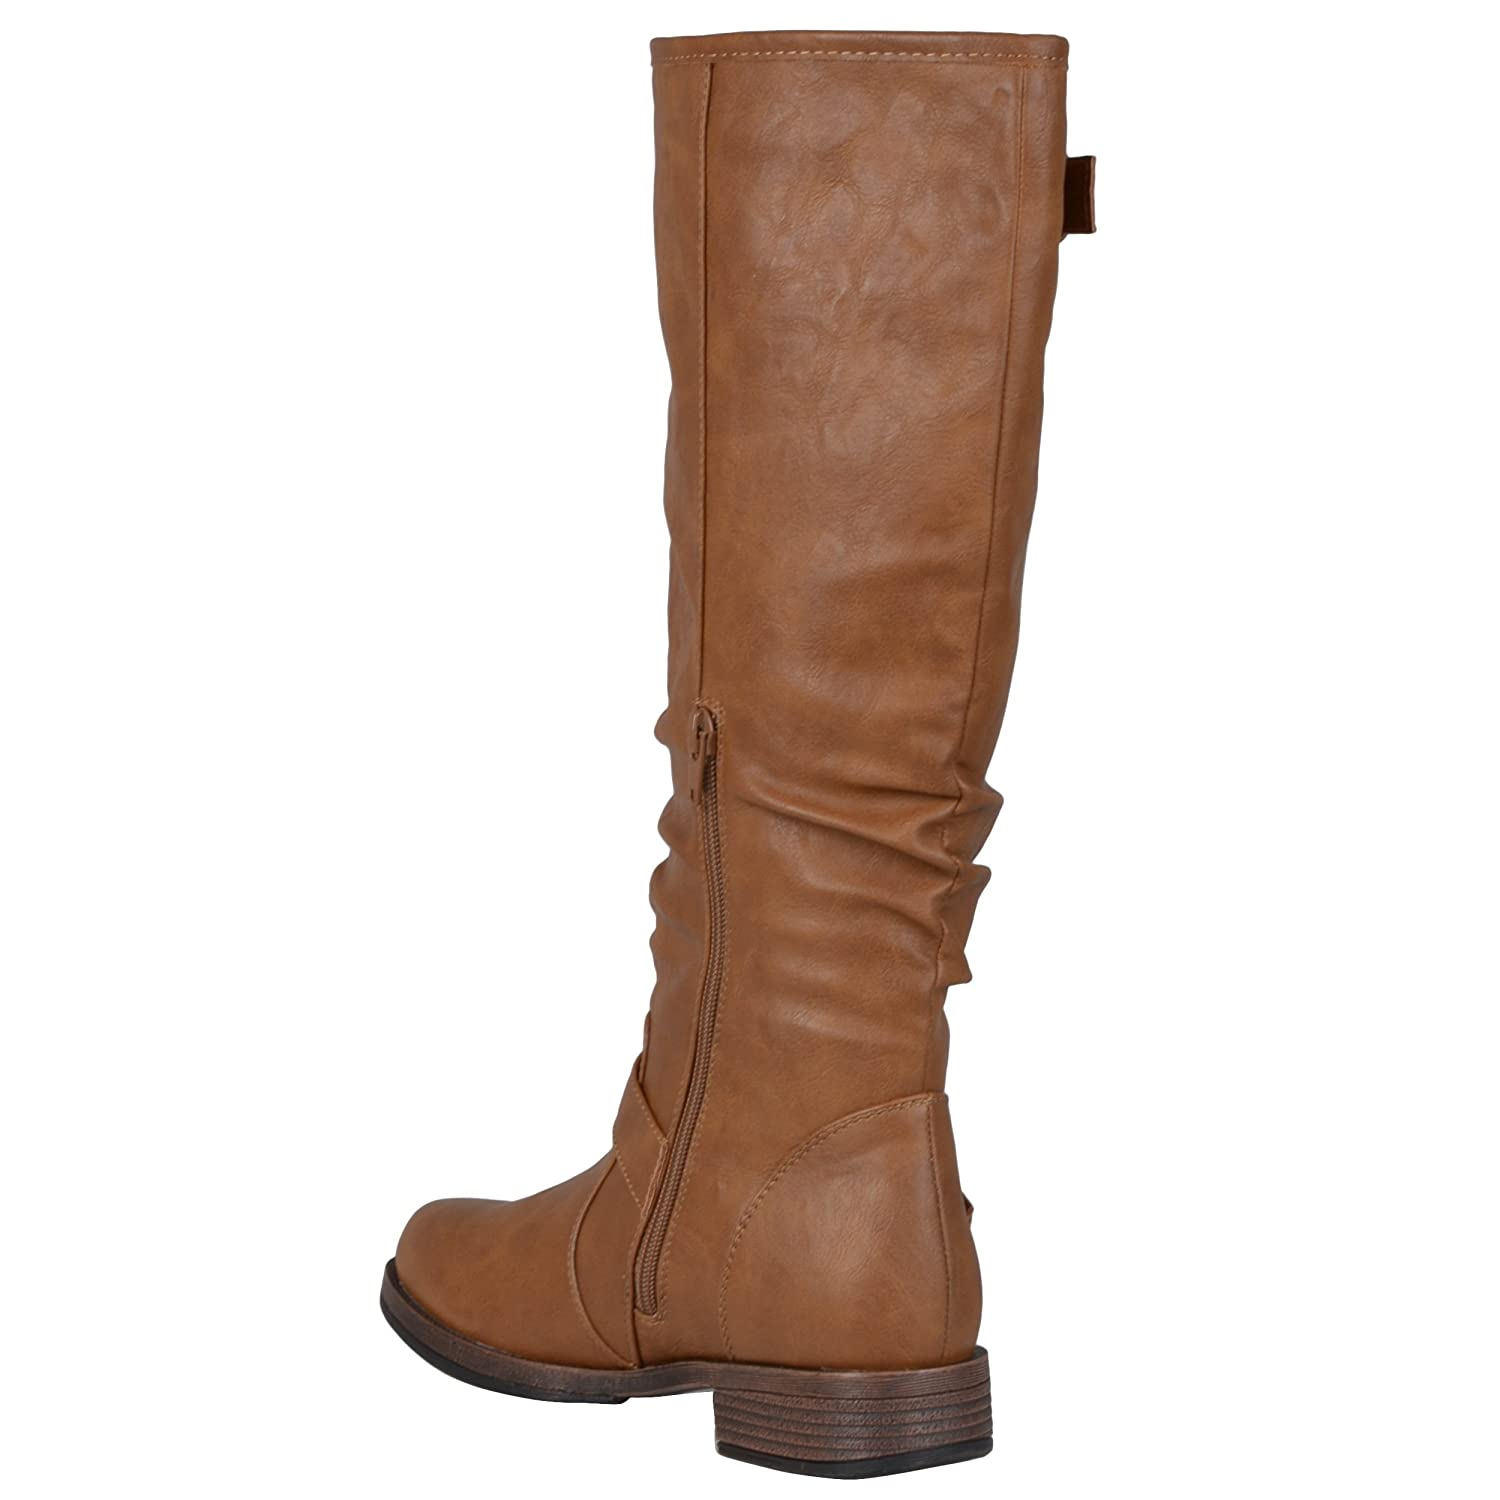 088d5dece3f5a Amazon com Journee Collection Womens Extra Wide Calf Buckle Knee High  Riding Boot Boots